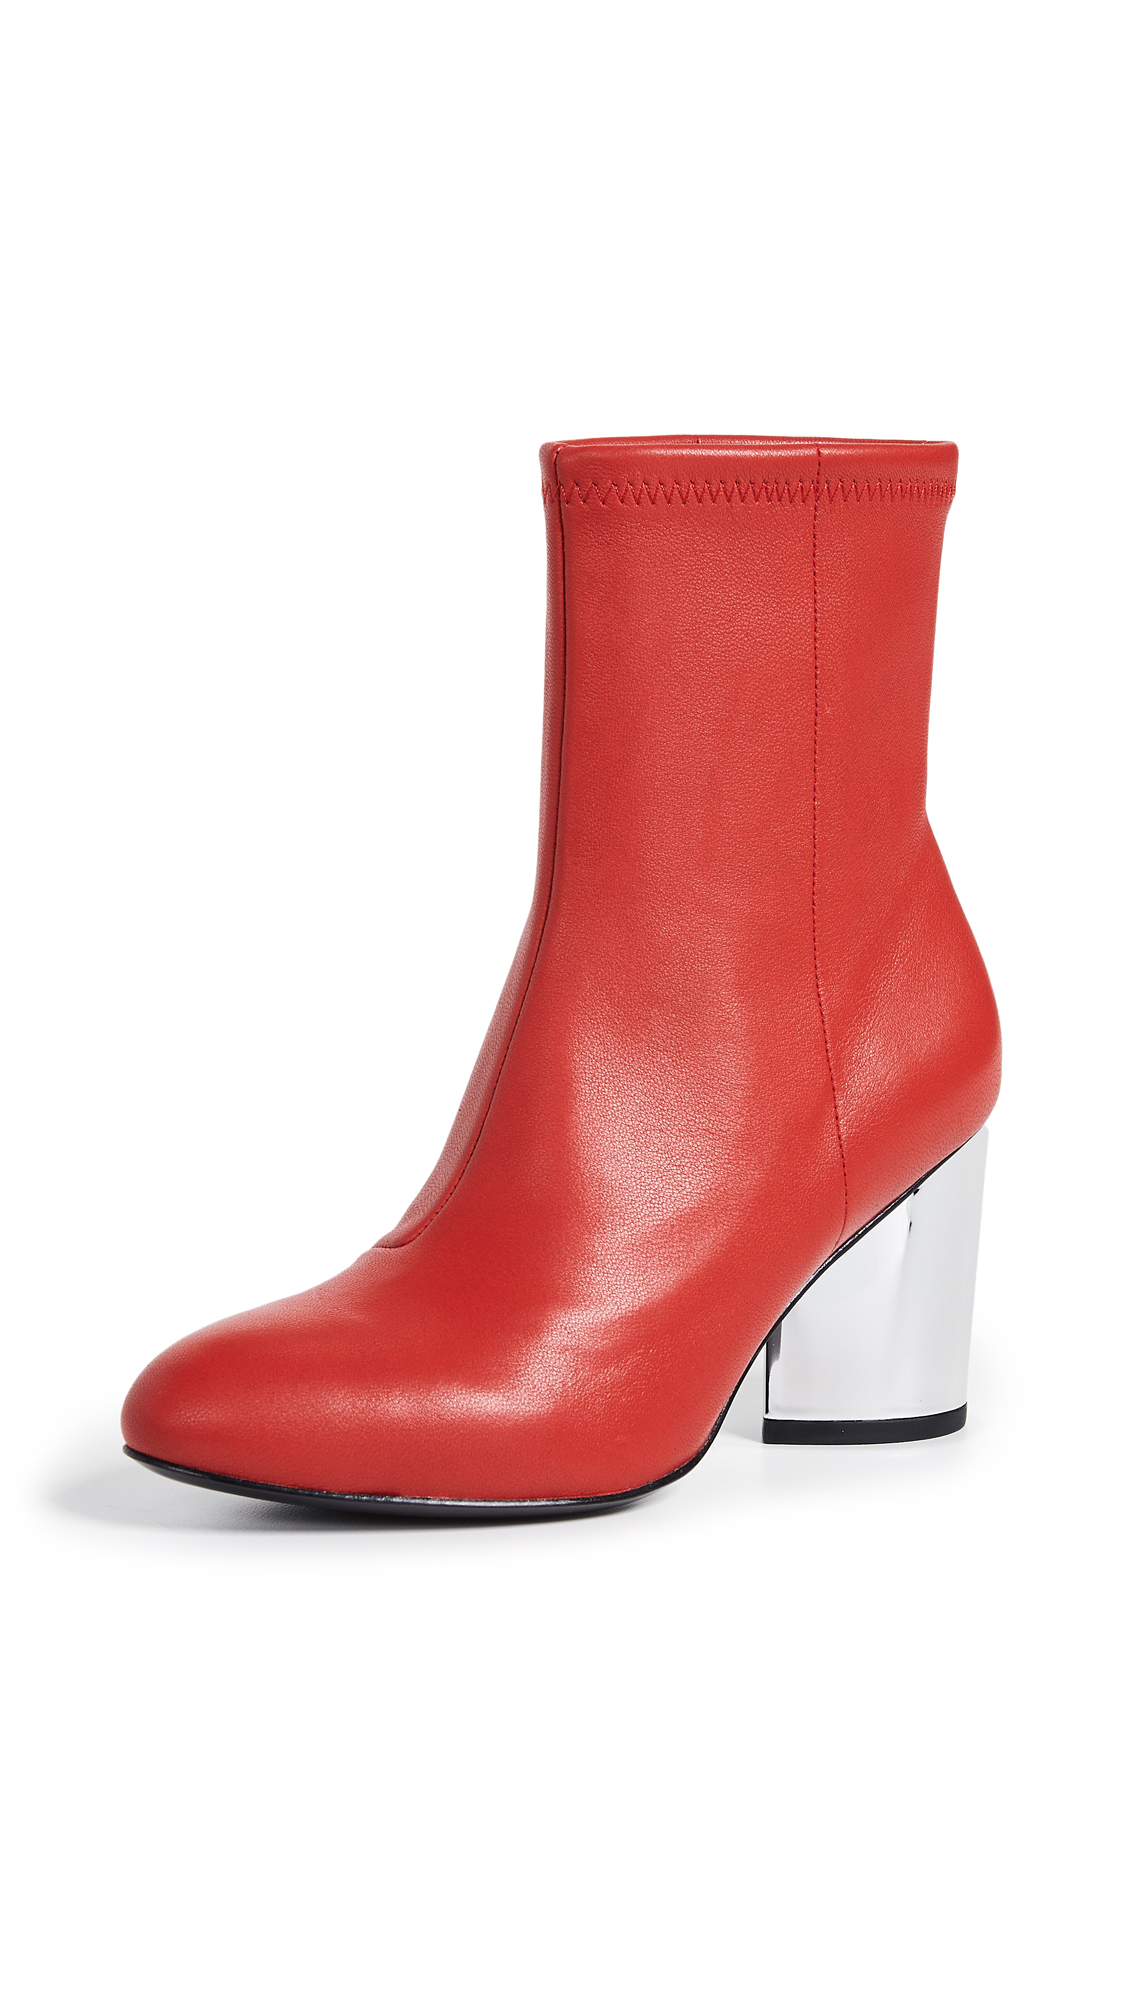 Opening Ceremony Dylan Stretch Leather Booties - Vixen Red